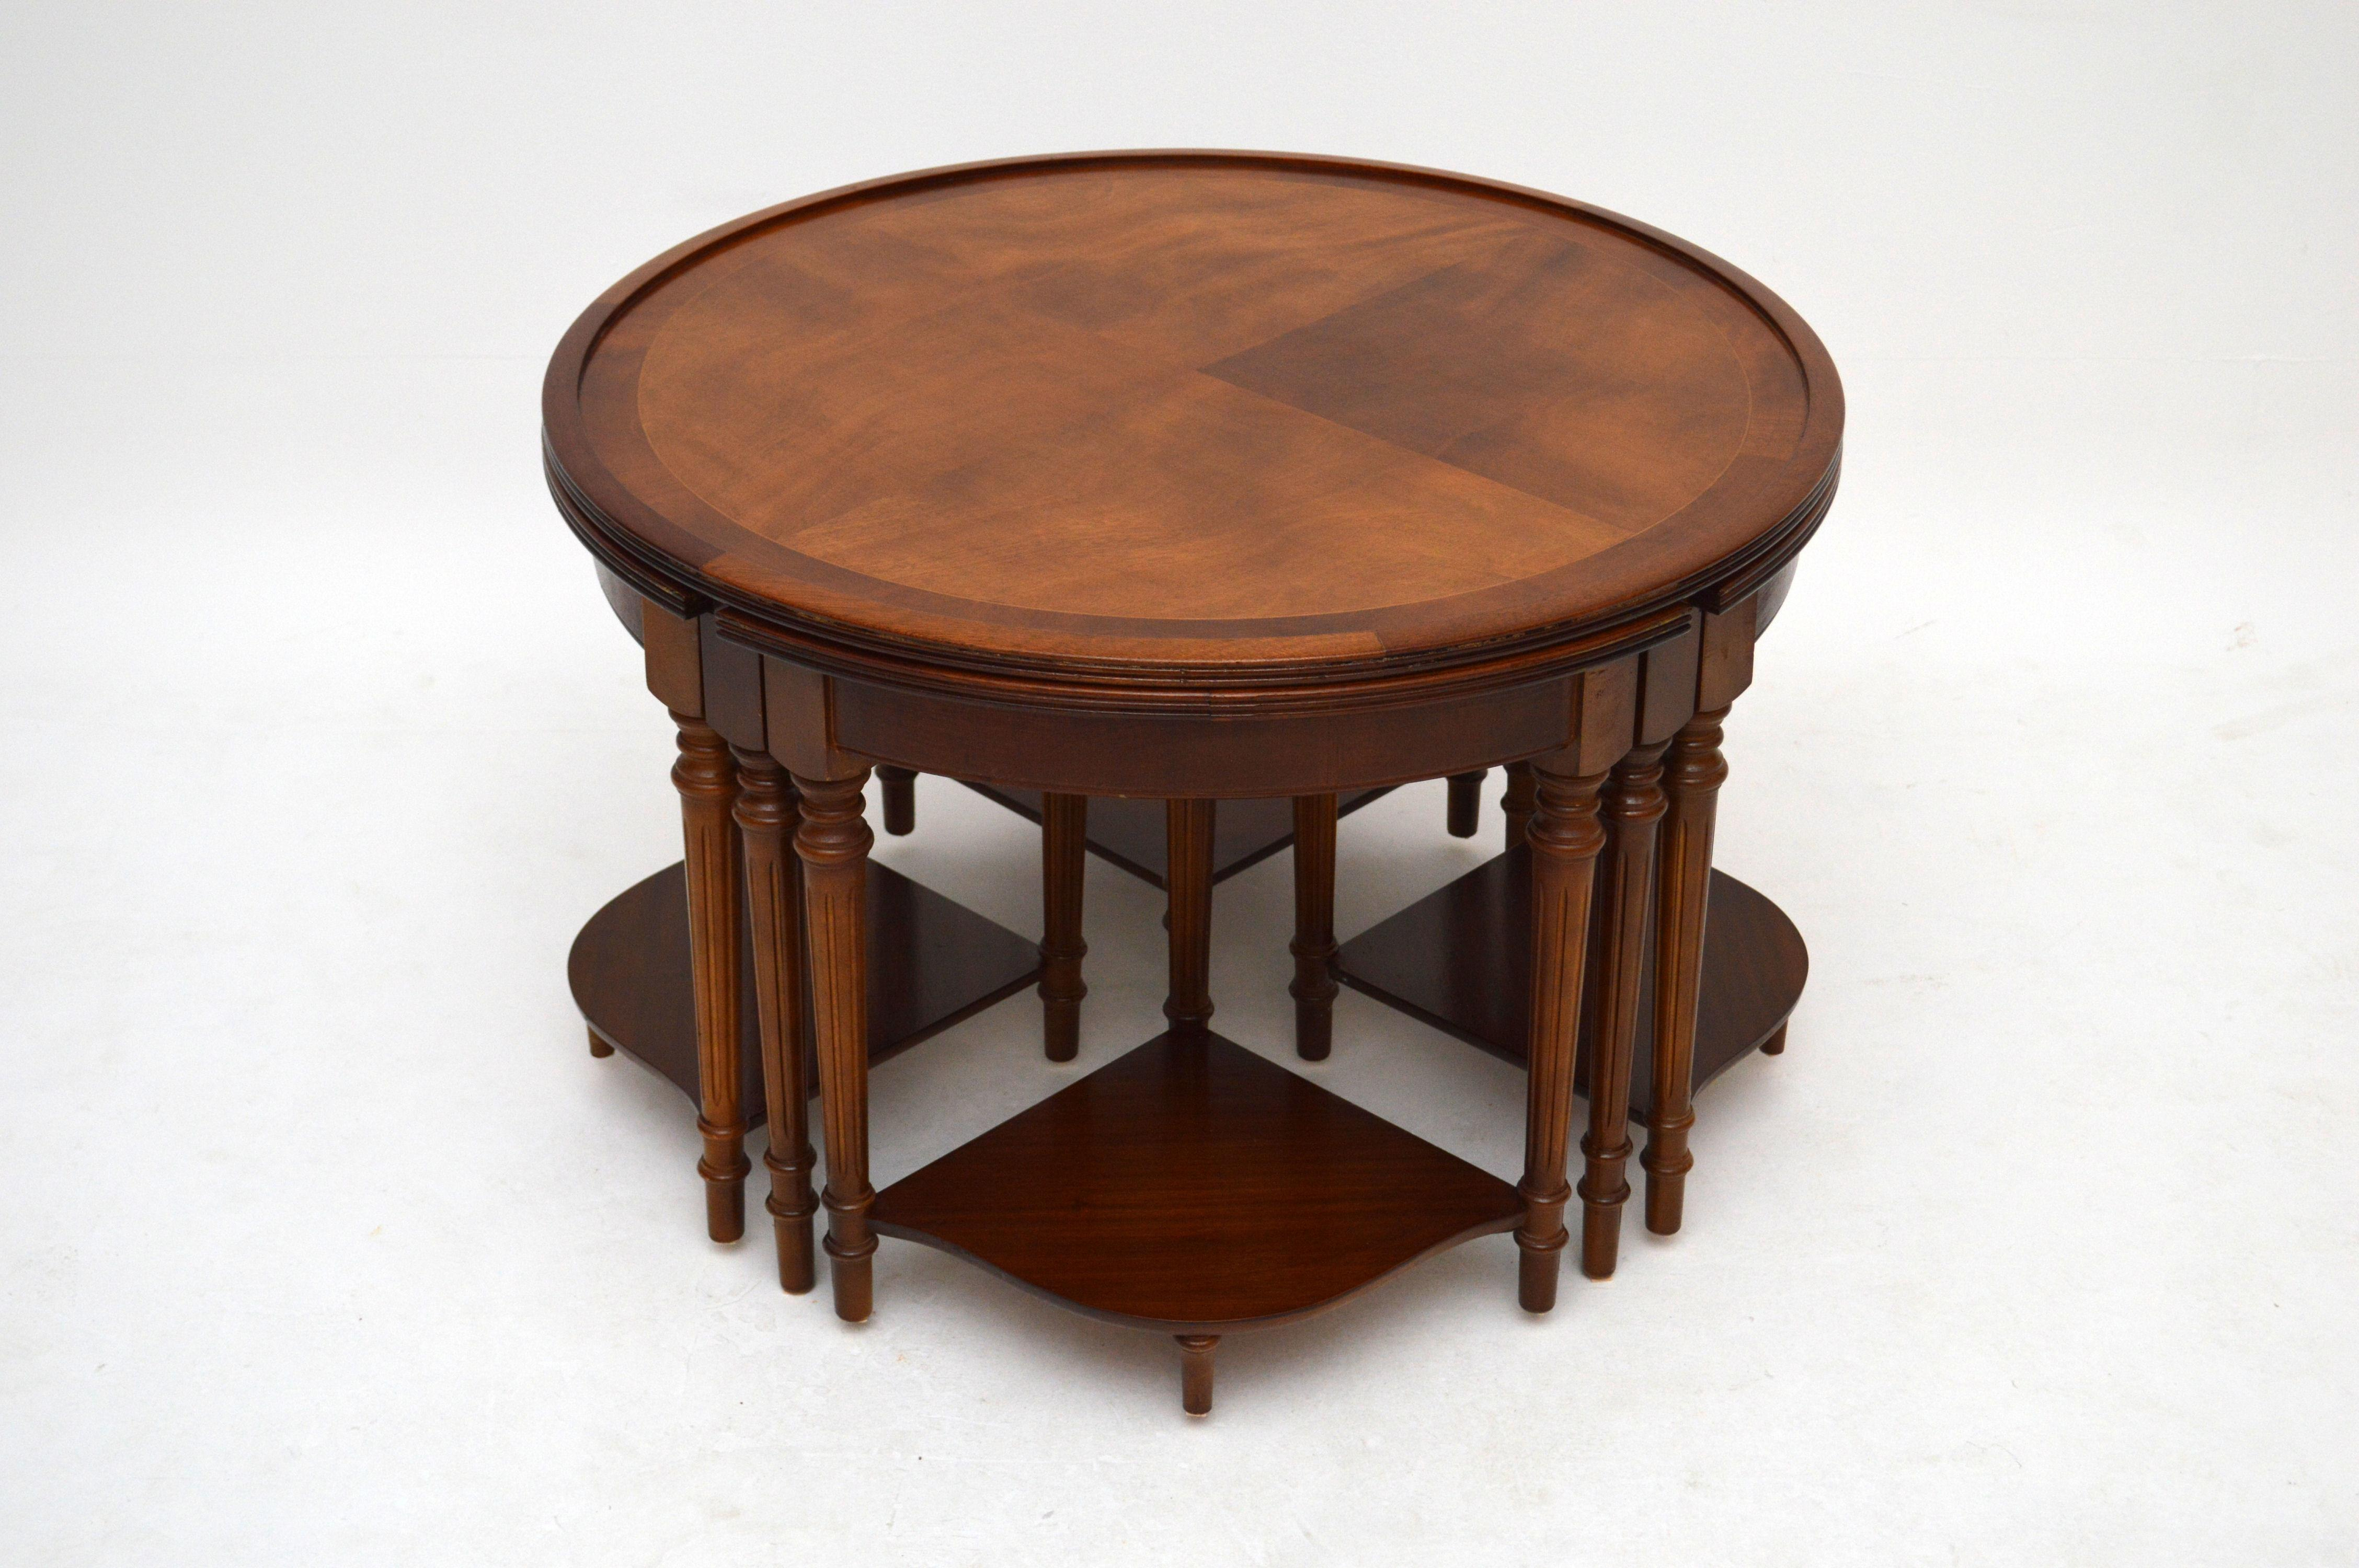 Coffee Table Nesting Tables Best Home Design 2018